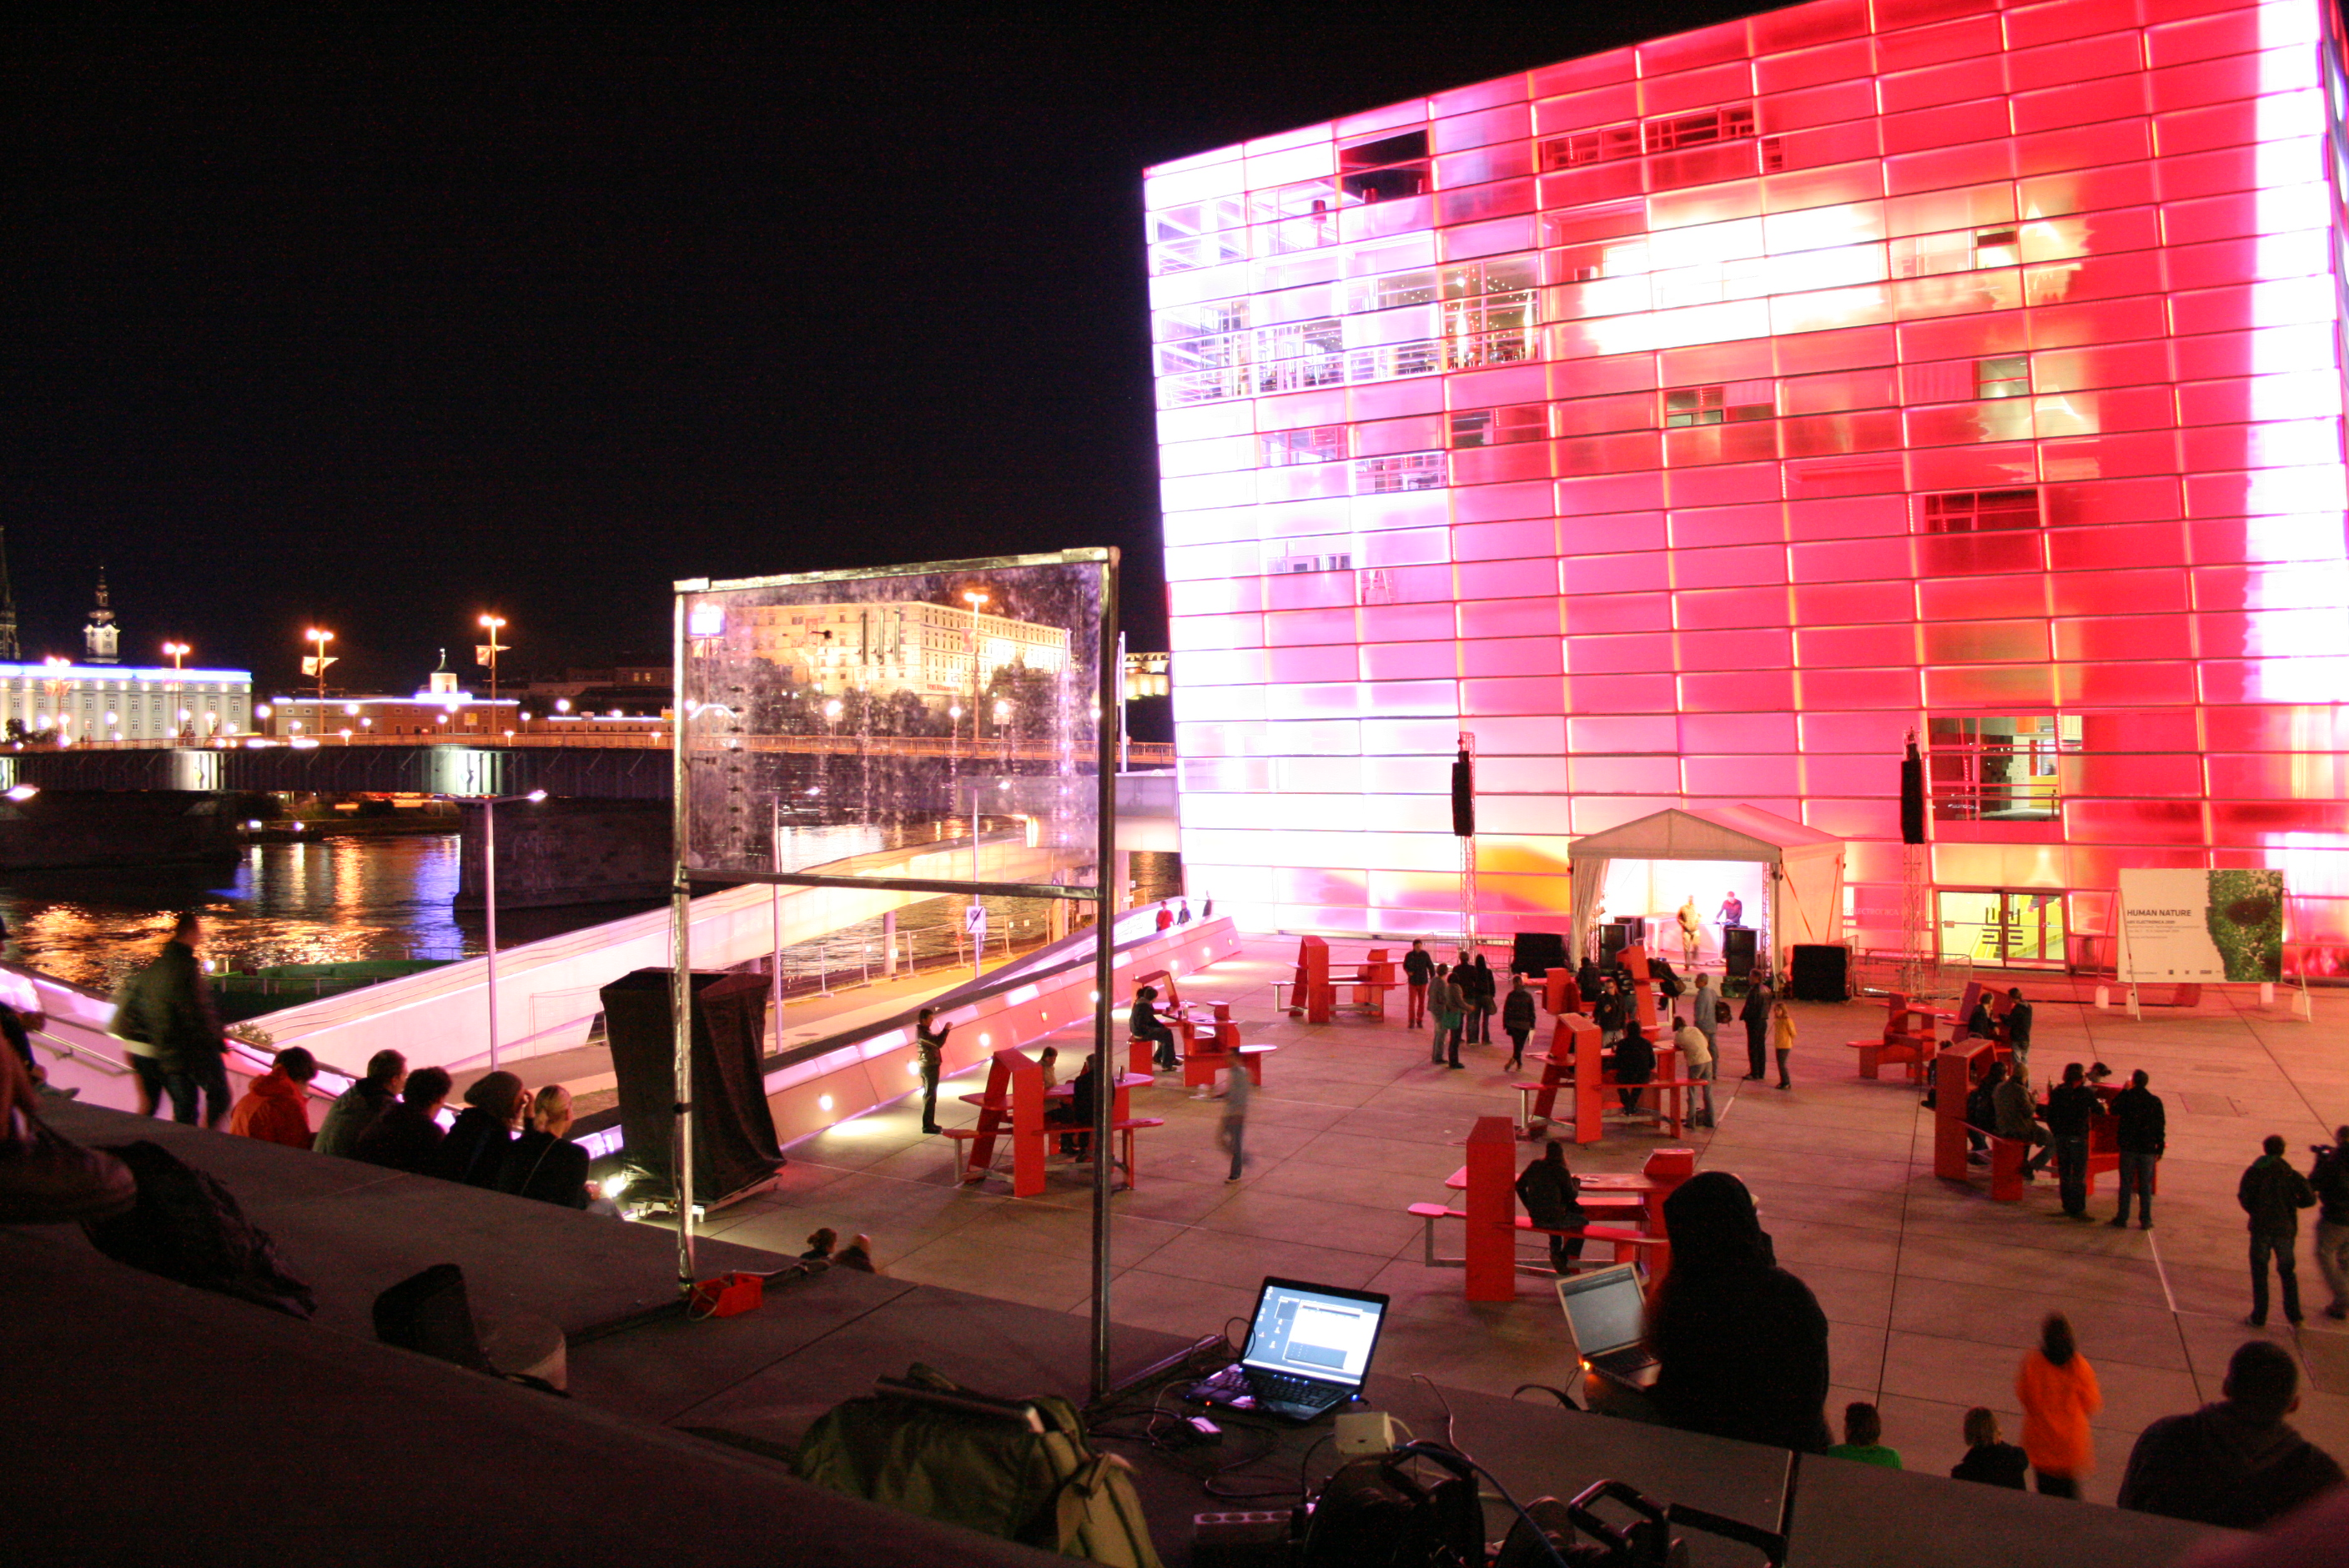 This picture shows the interface with the Ars Electronica Center in the background